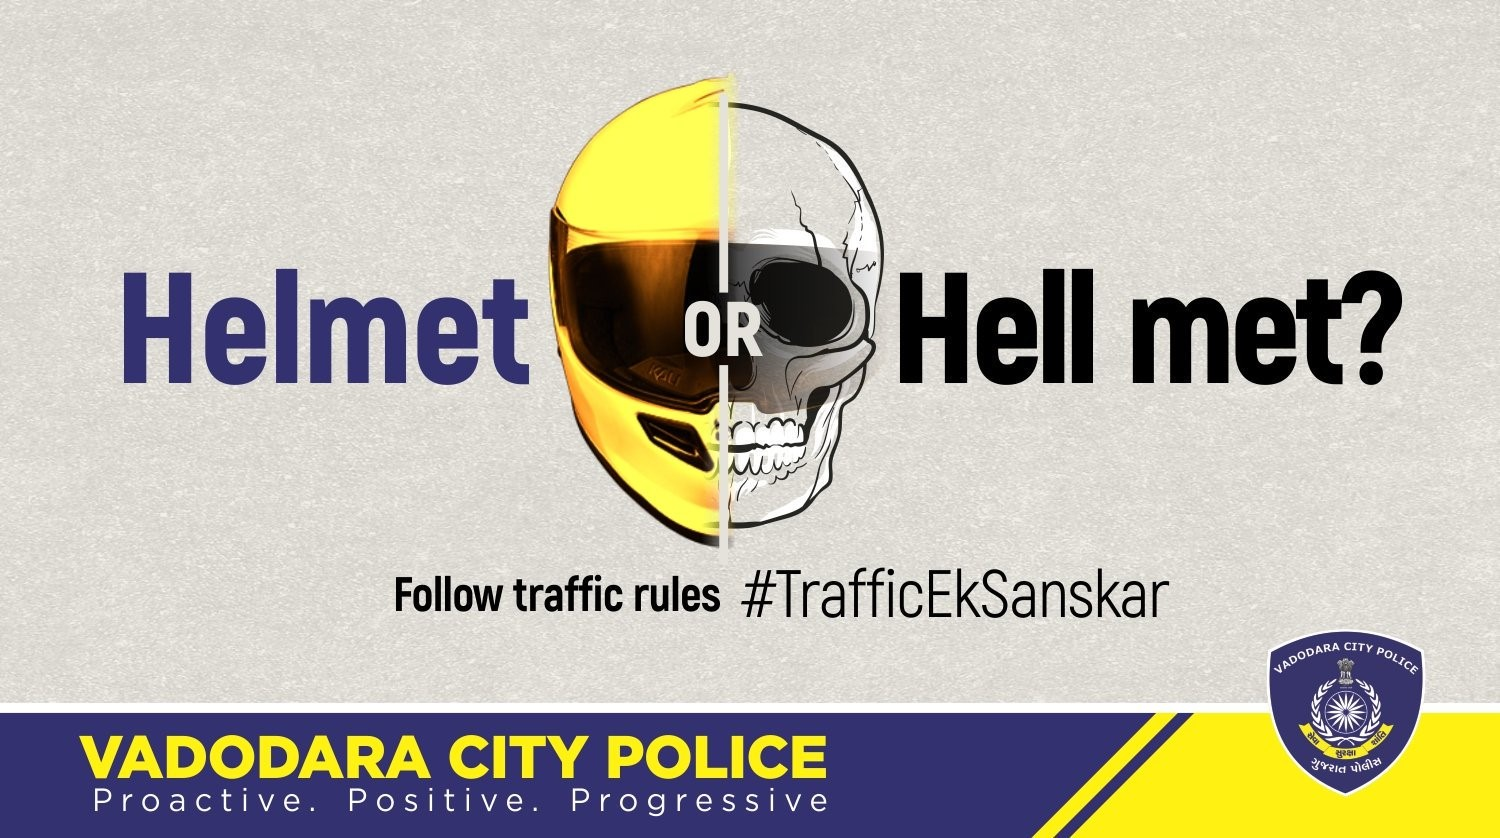 Gujarat Police is using Social Media to create awareness for road safety